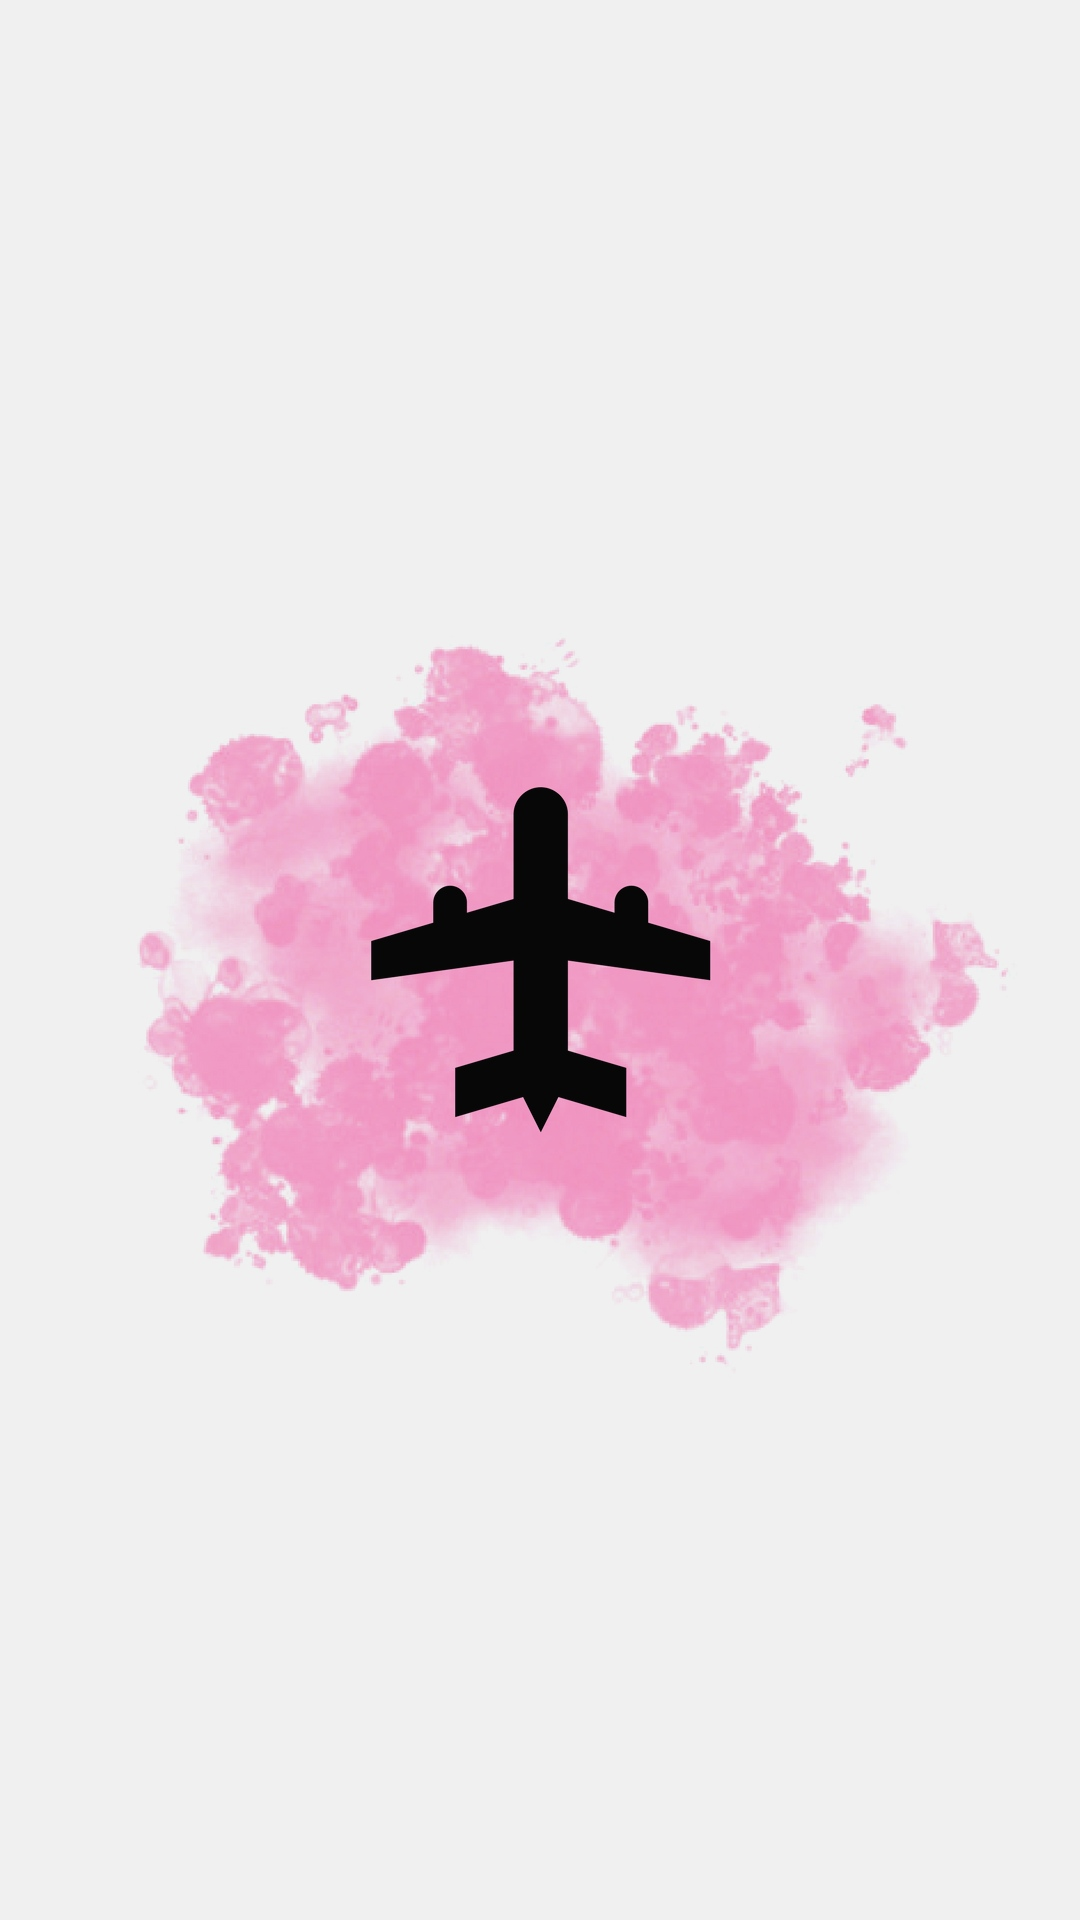 instagram icons instagramhighlighticons pink makeup instagram highlight icons travel 1897781 hd wallpaper backgrounds download instagram highlight icons travel